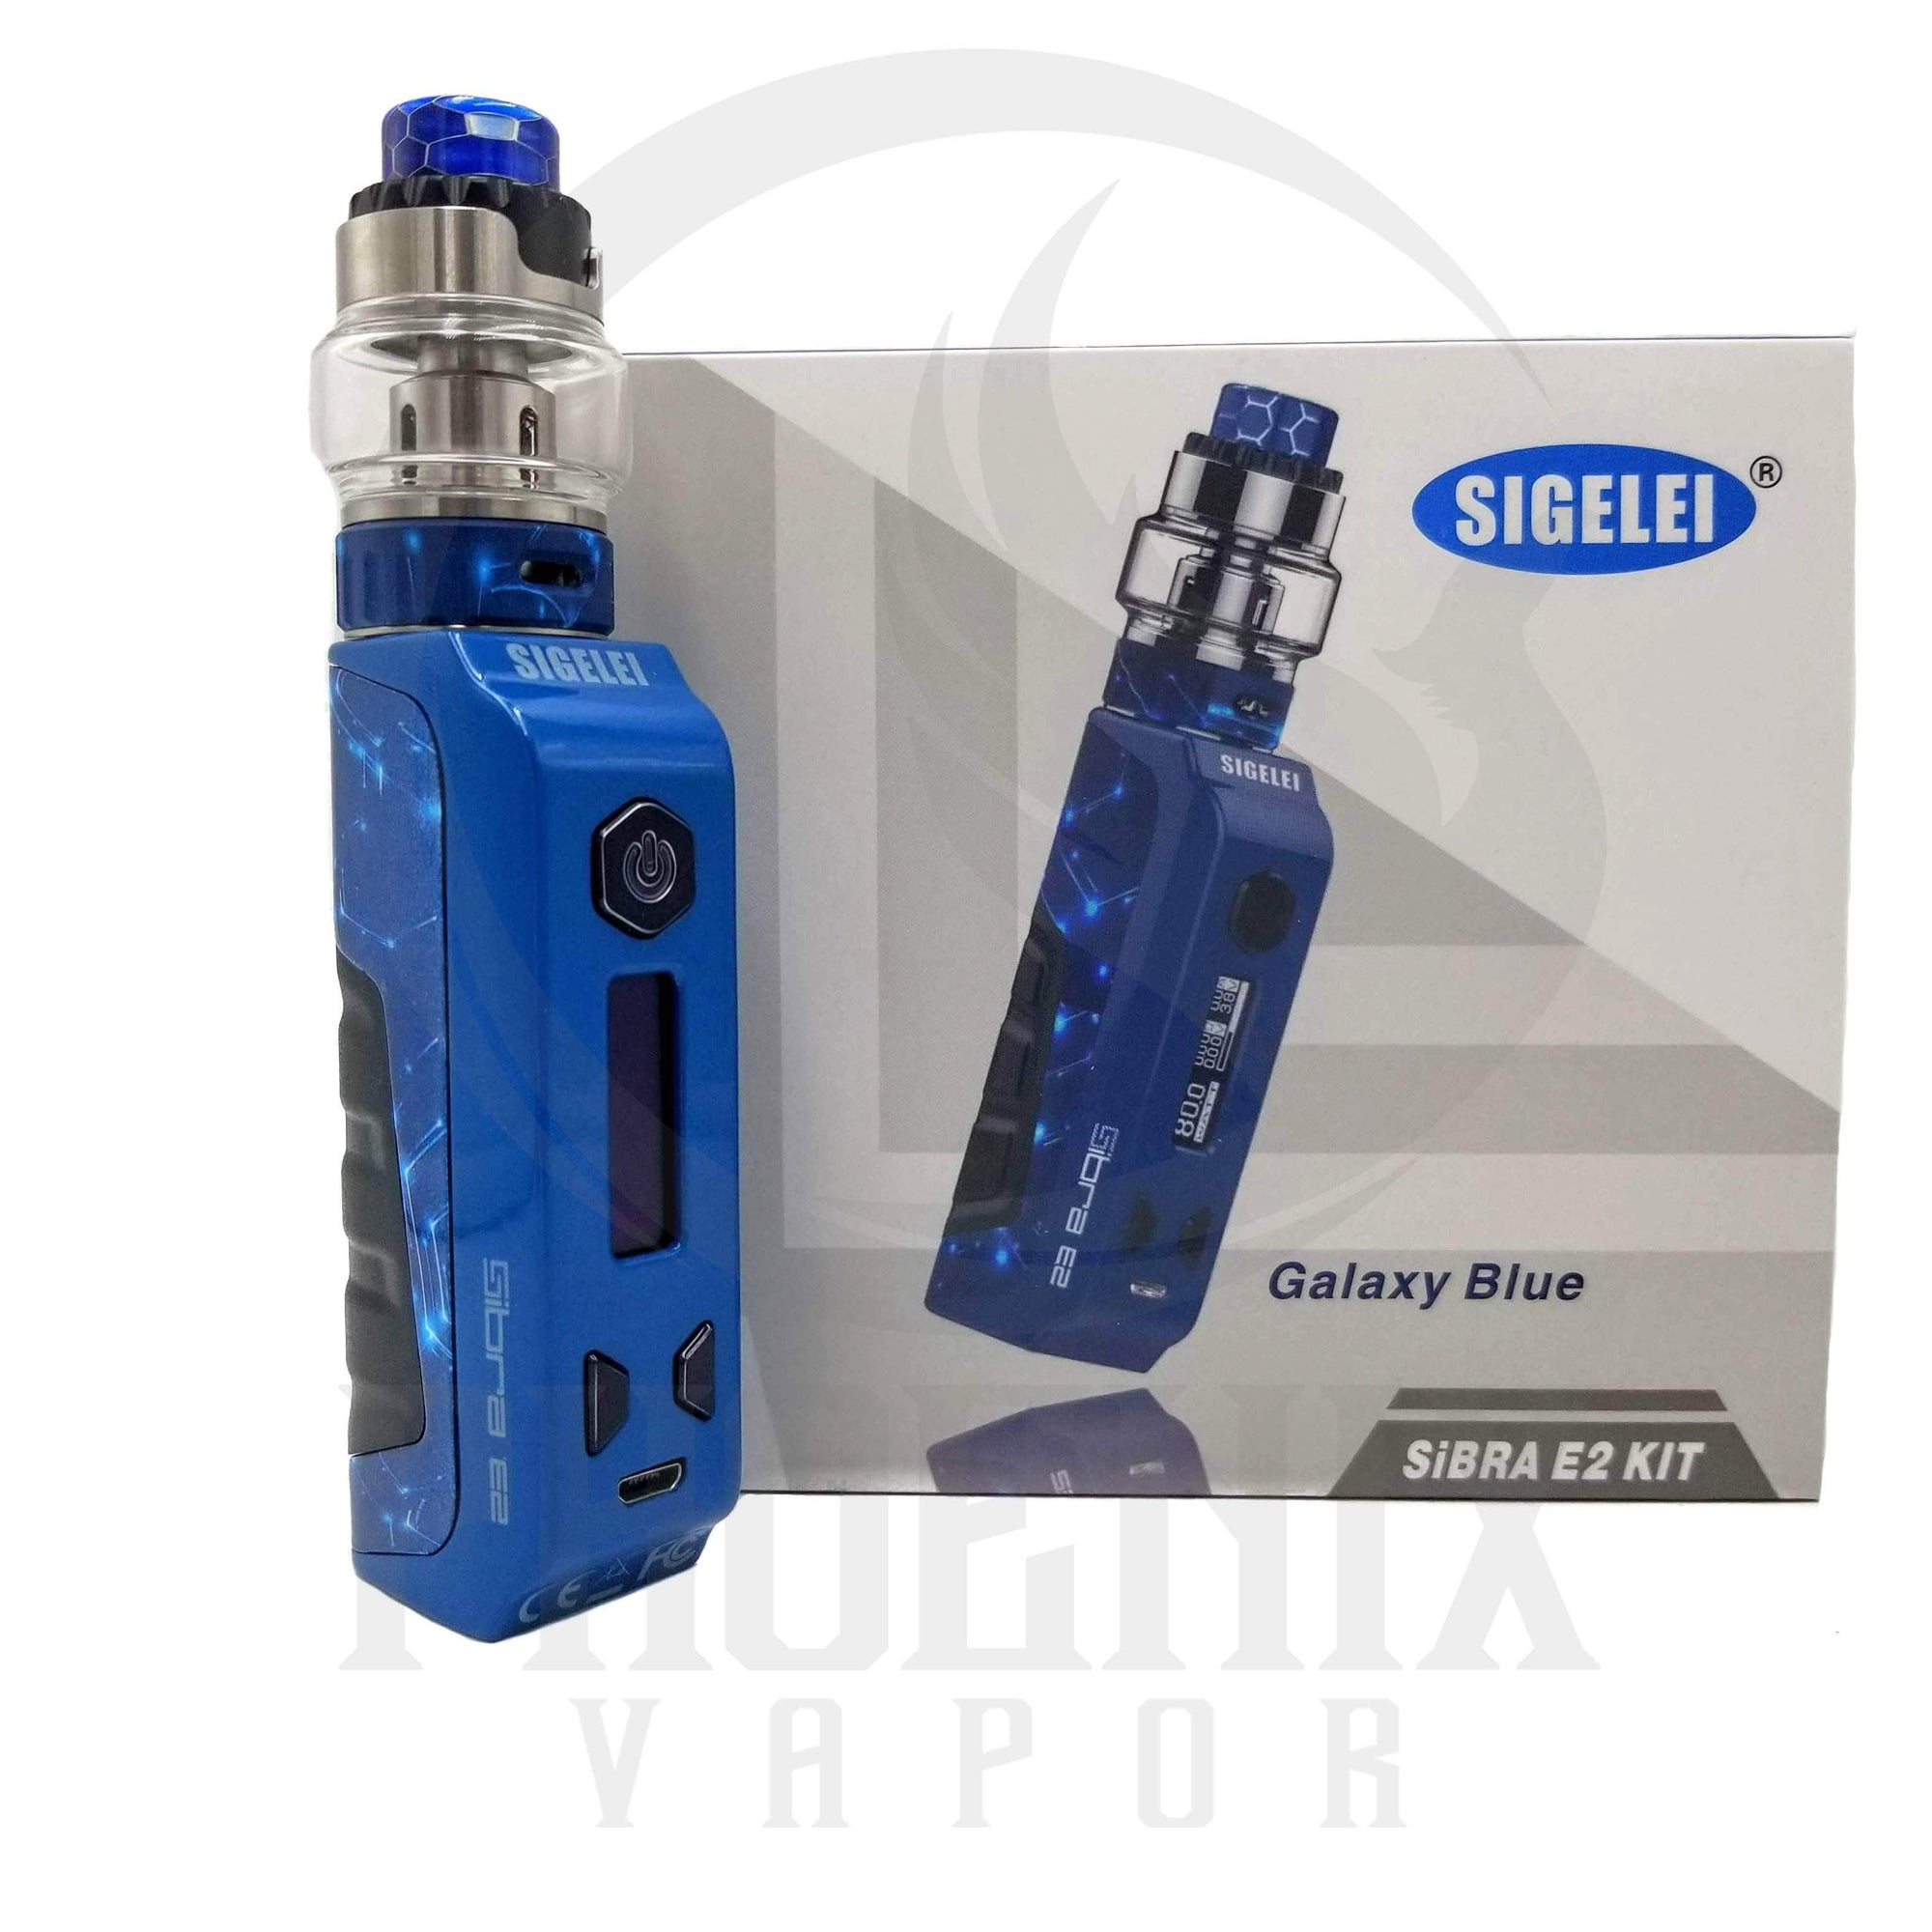 Sigelei (Mods) Regulated Mod Galaxy Blue Sibra E2 80W Kit by Sigelei